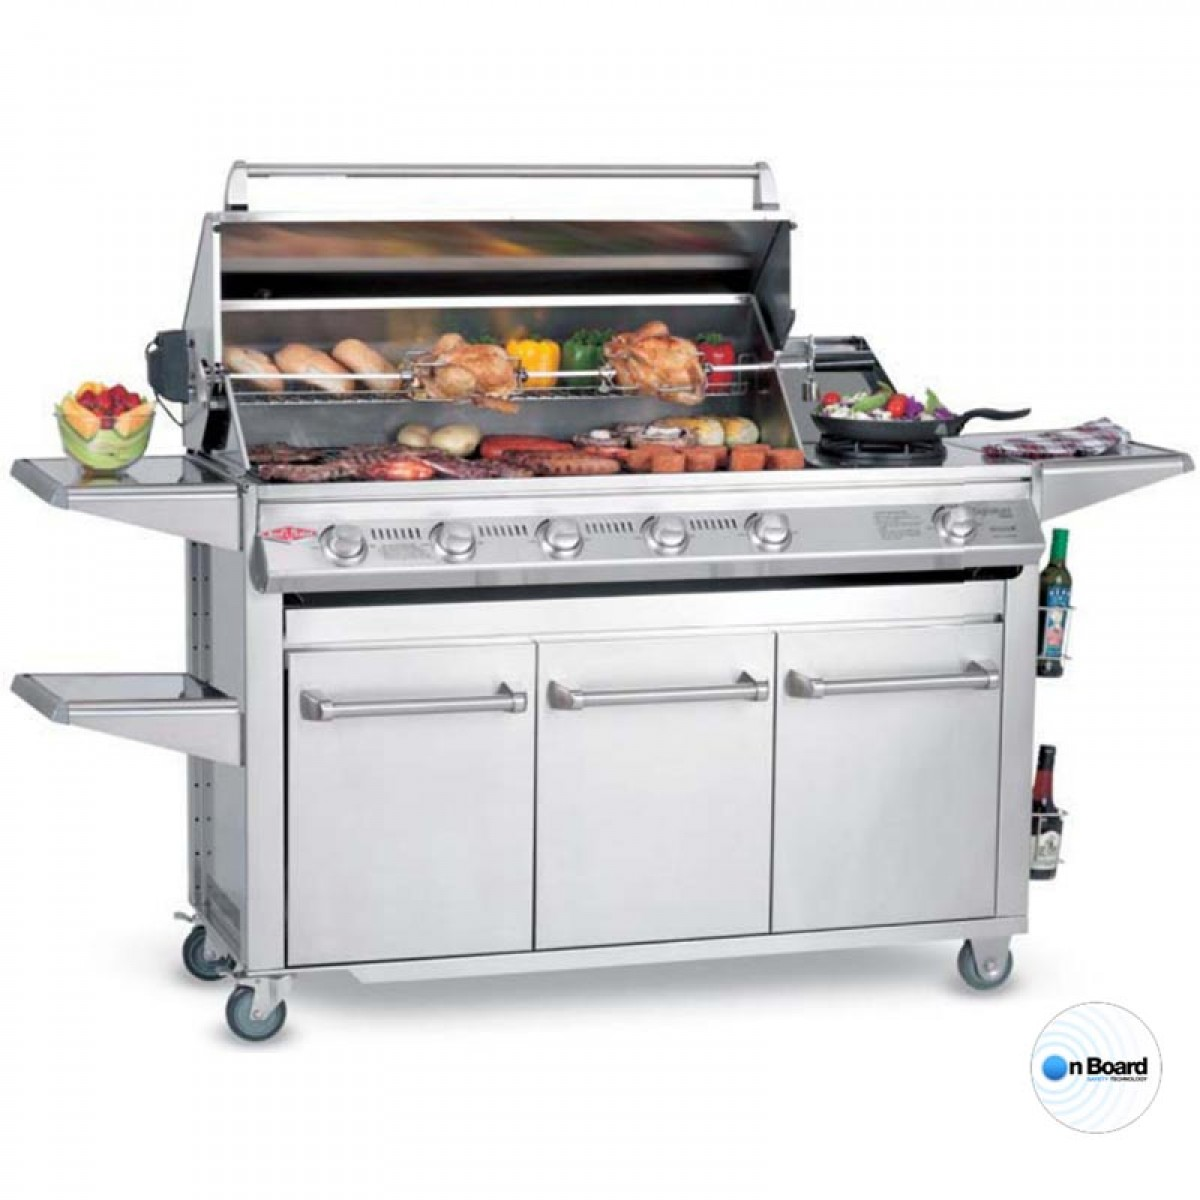 BeefEater Signature SL4000S Series Propane LP Gas Barbecue ...